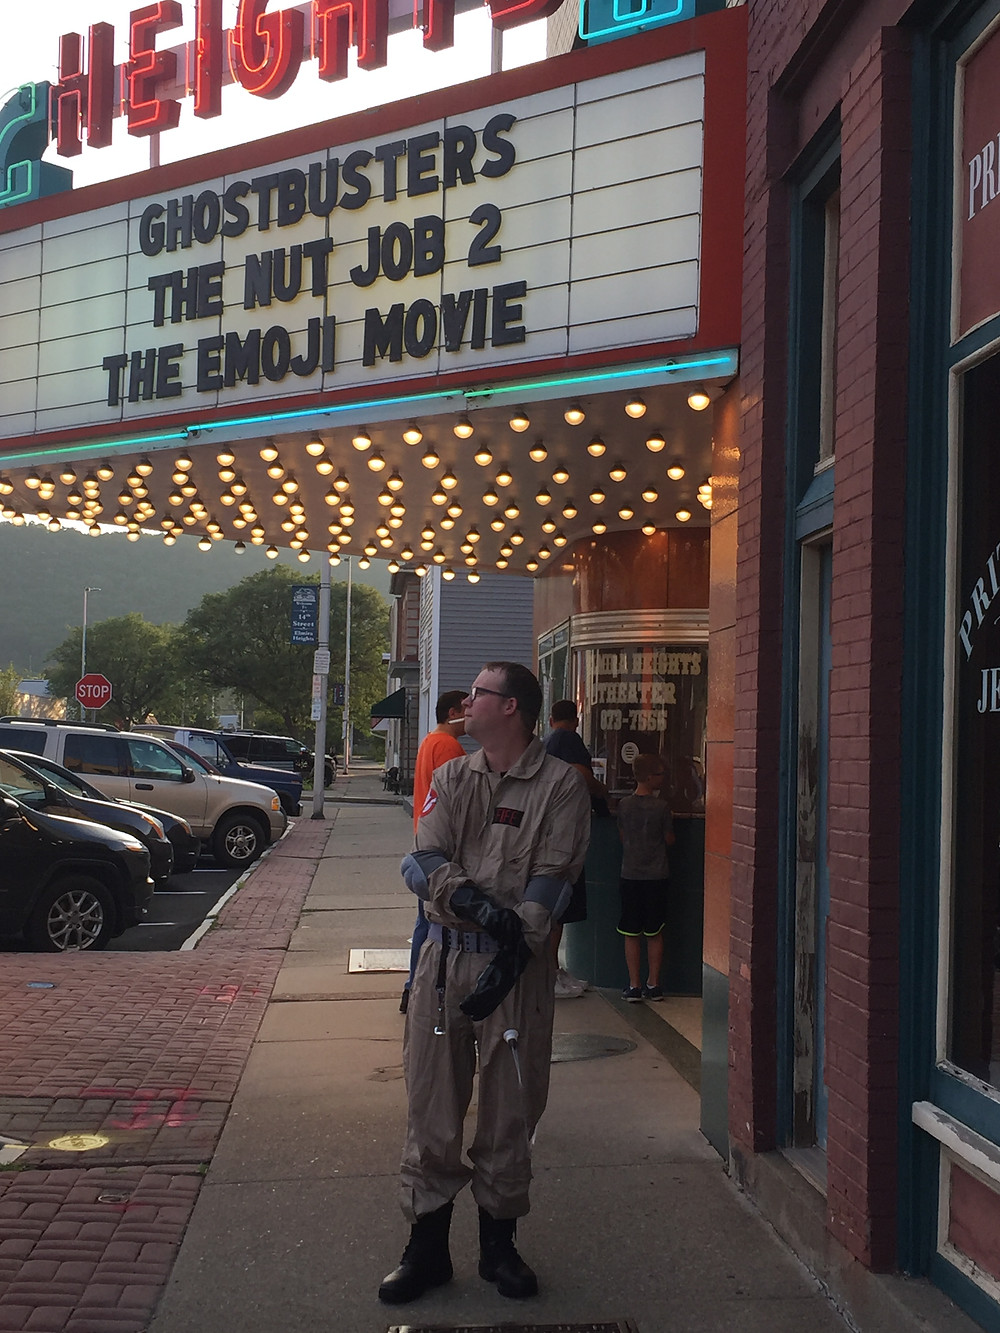 Ghostbusters cosplay at a theater.